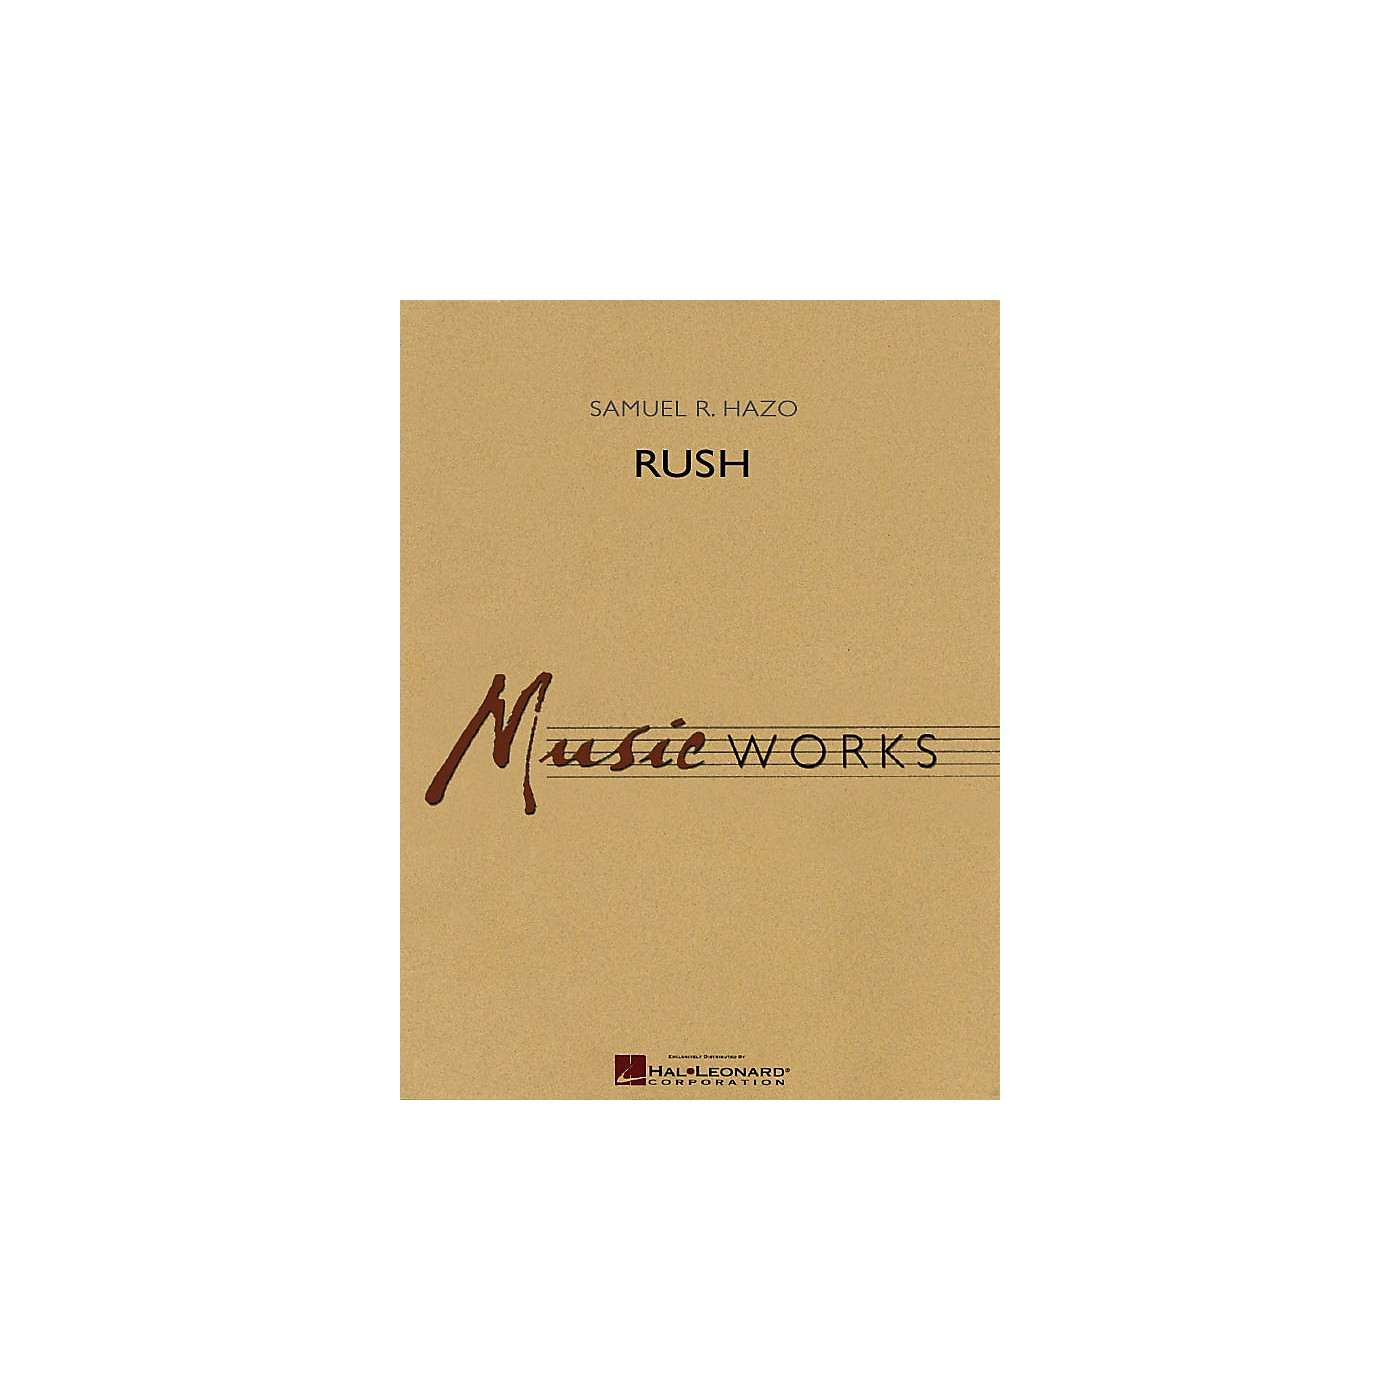 Hal Leonard Rush Concert Band Level 5 Composed by Samuel R. Hazo thumbnail